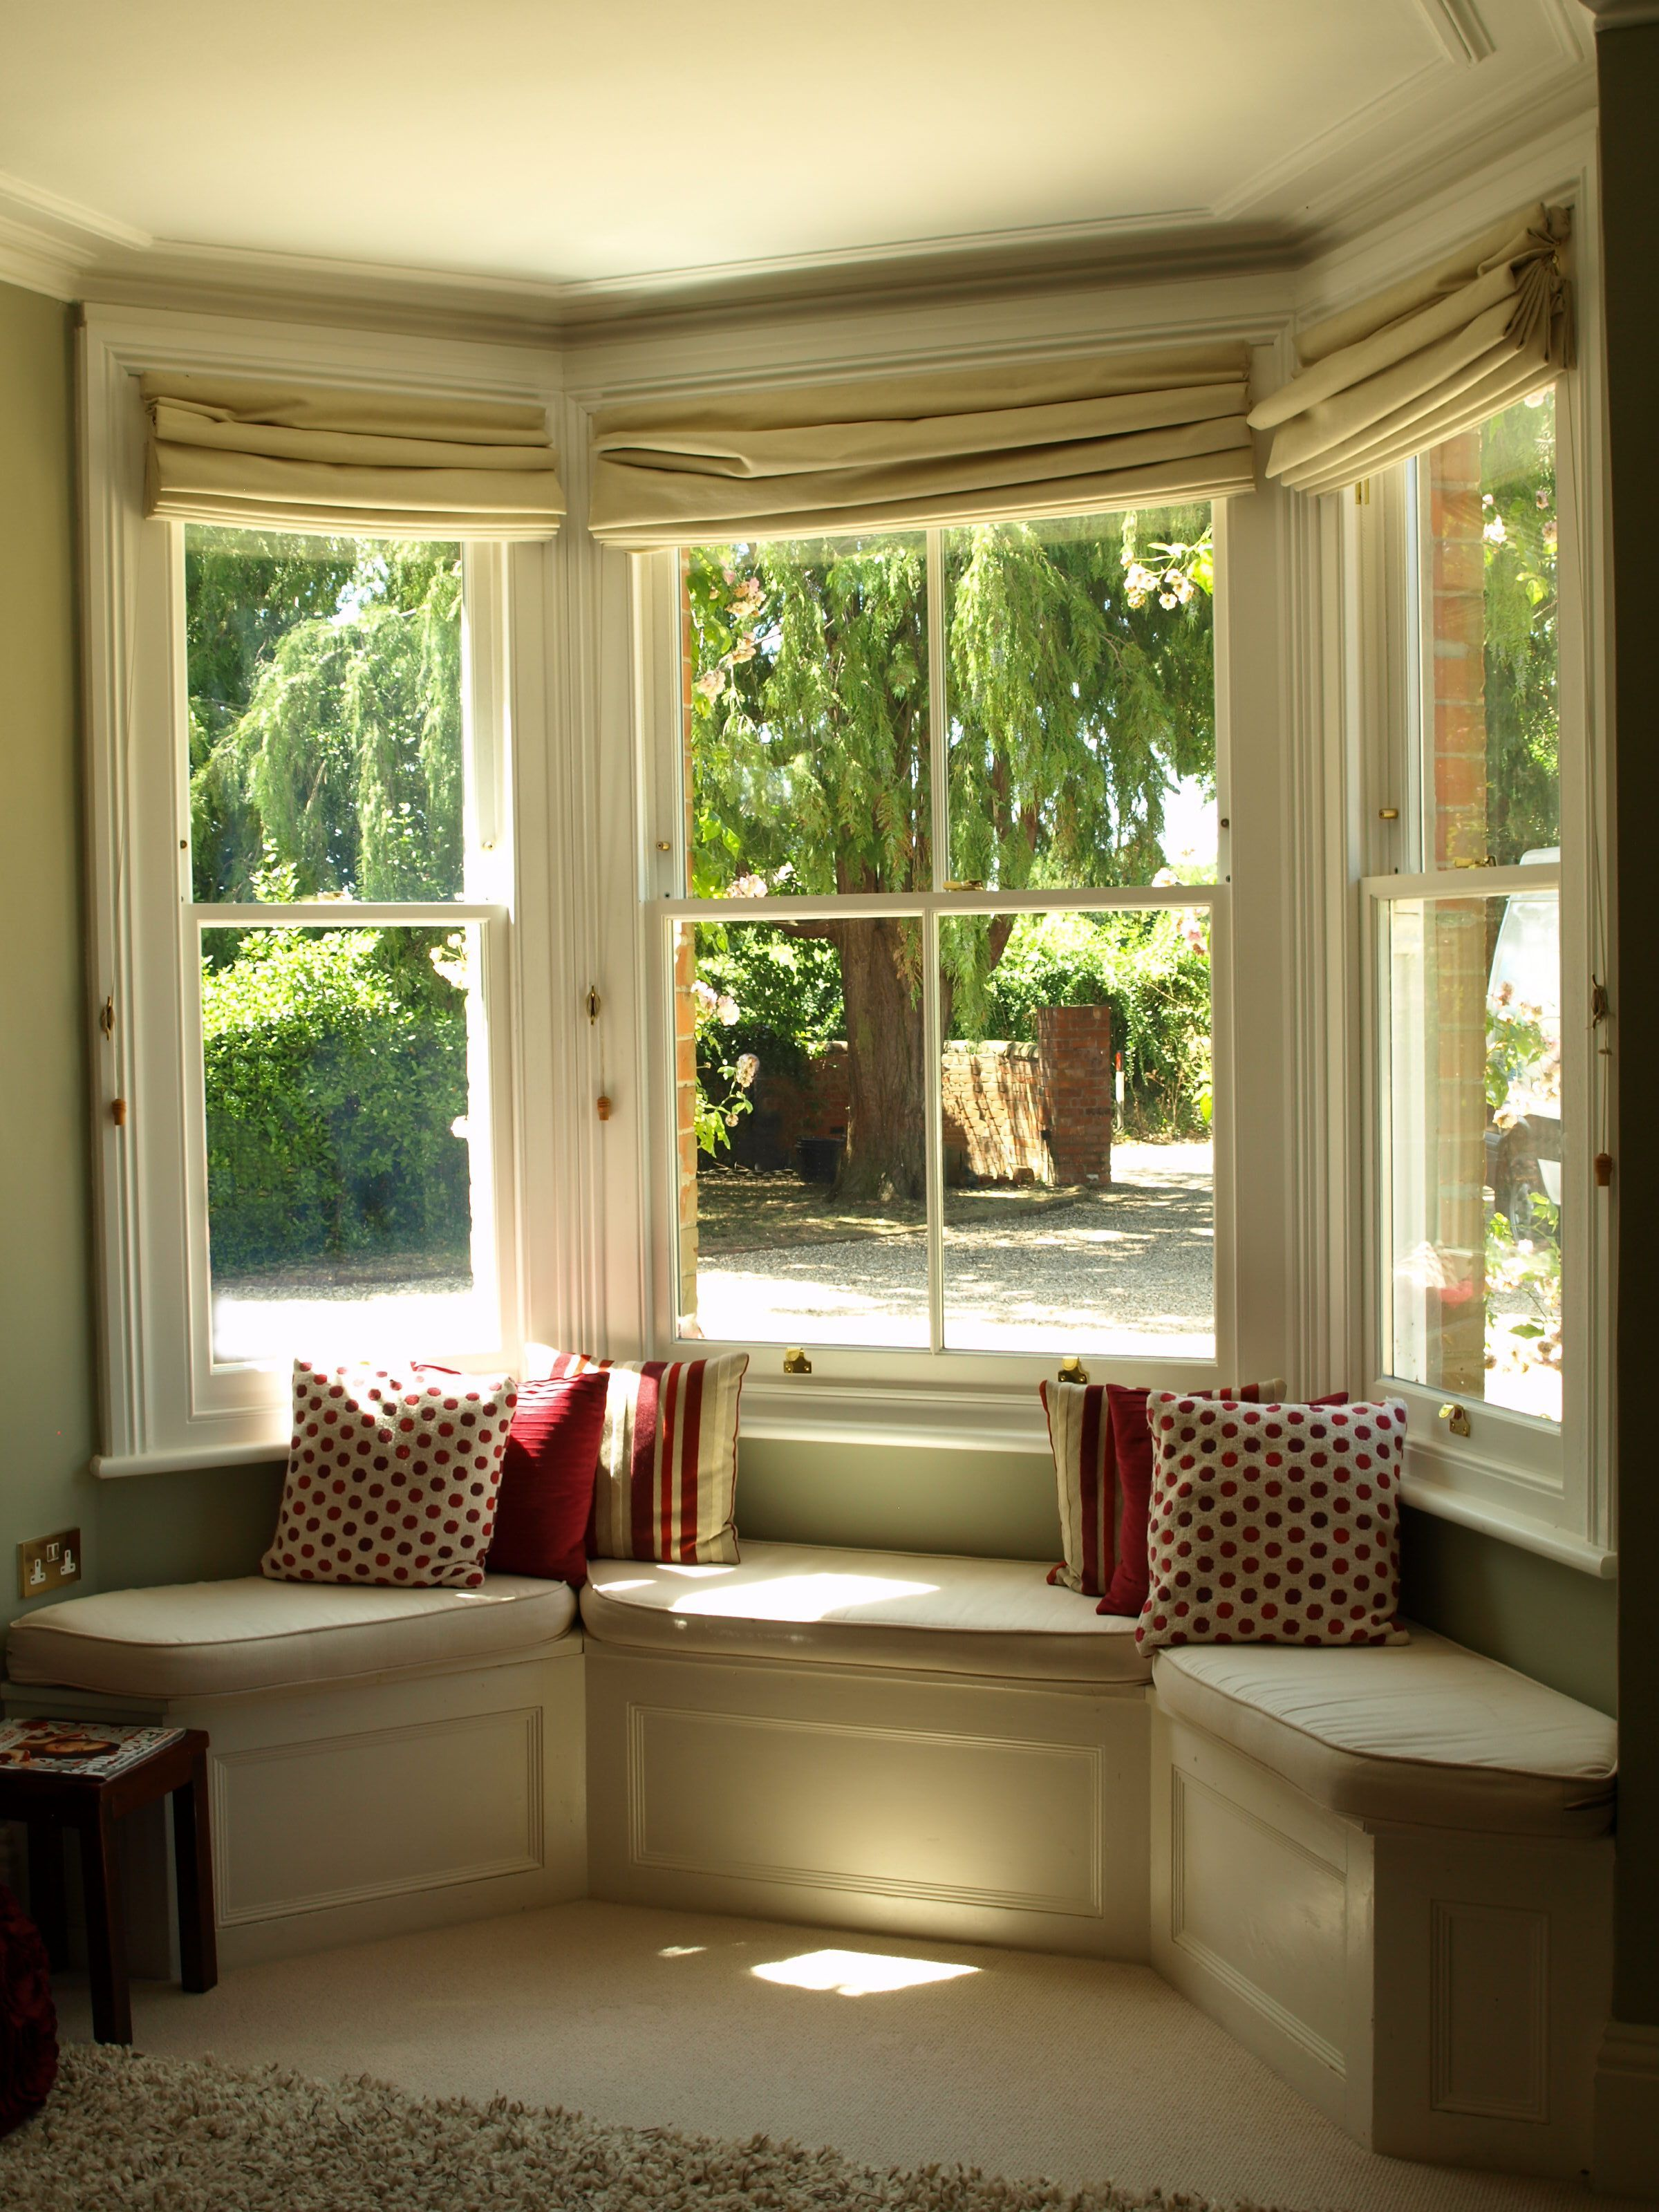 Bay window ideas blending functionality with modern interior design